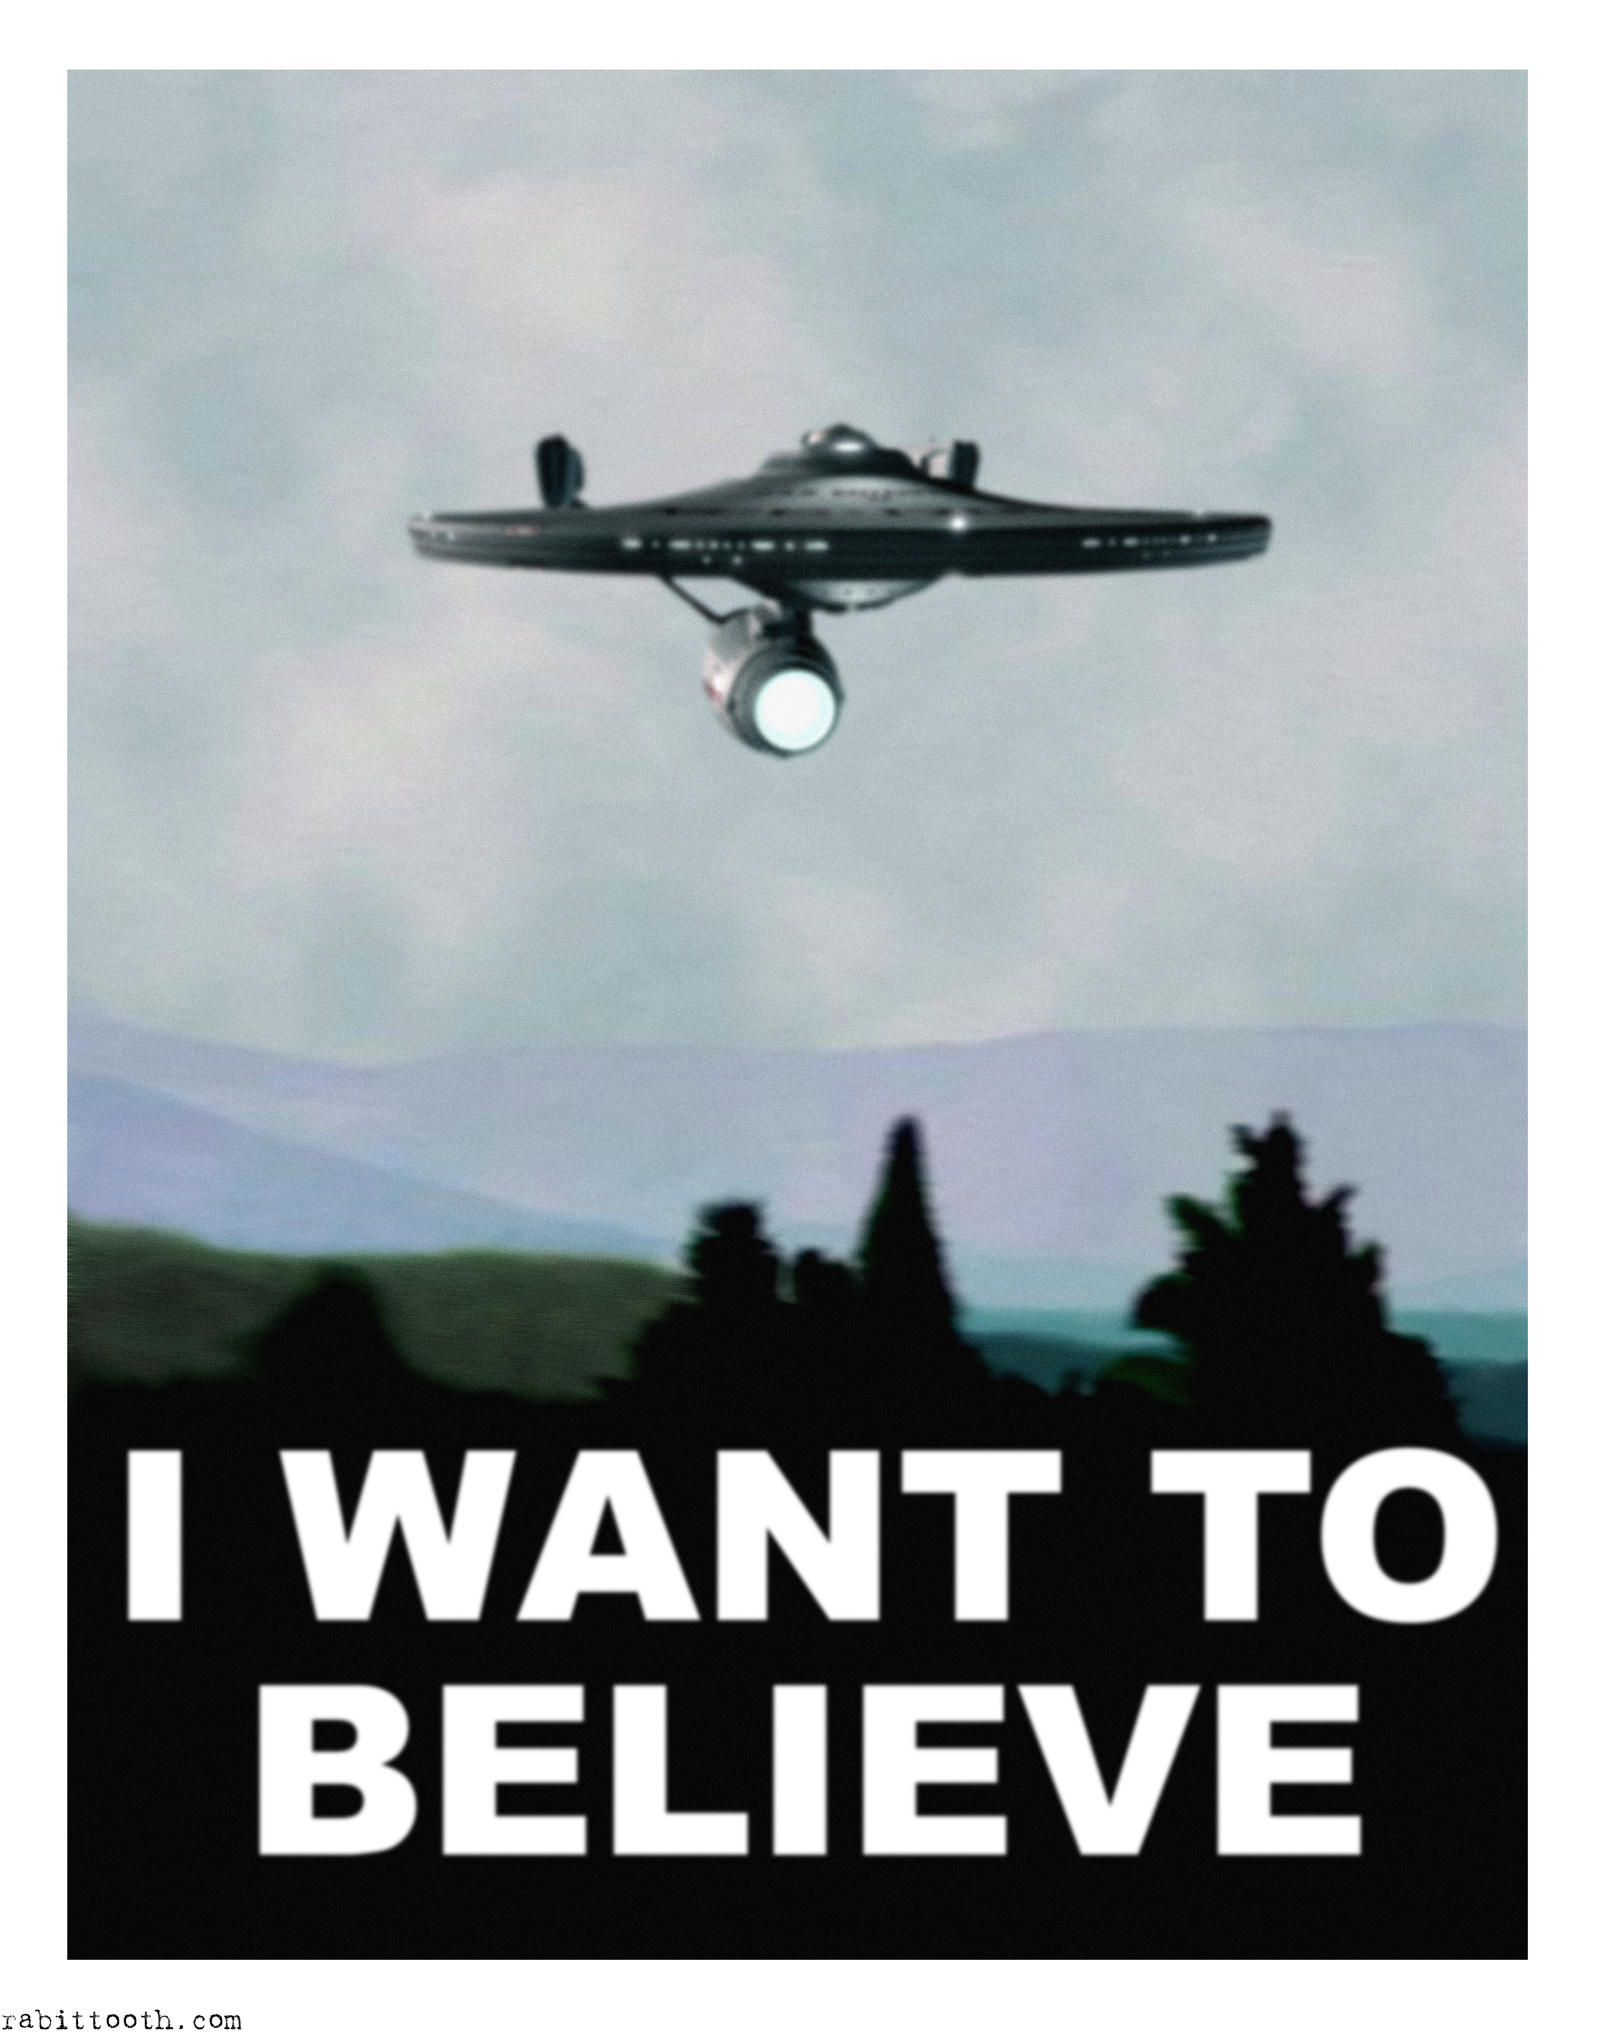 Enterprise X files I Want to Believe Poster by RabittoothI Want To Believe X Files